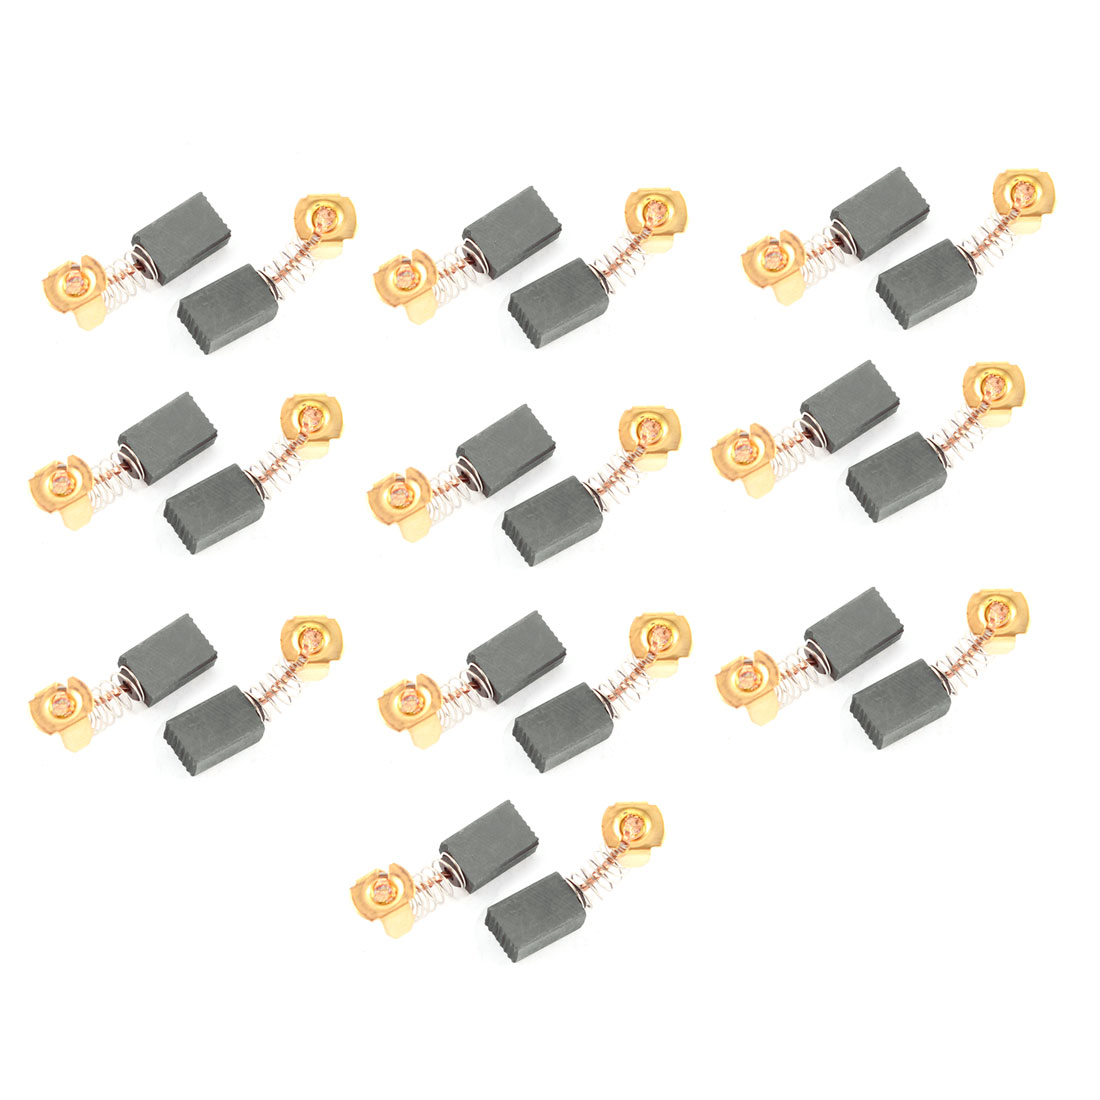 20PCS CB51 Electric Motor Carbon Brushes Replacement 11mmx8mmx5mm for Makita